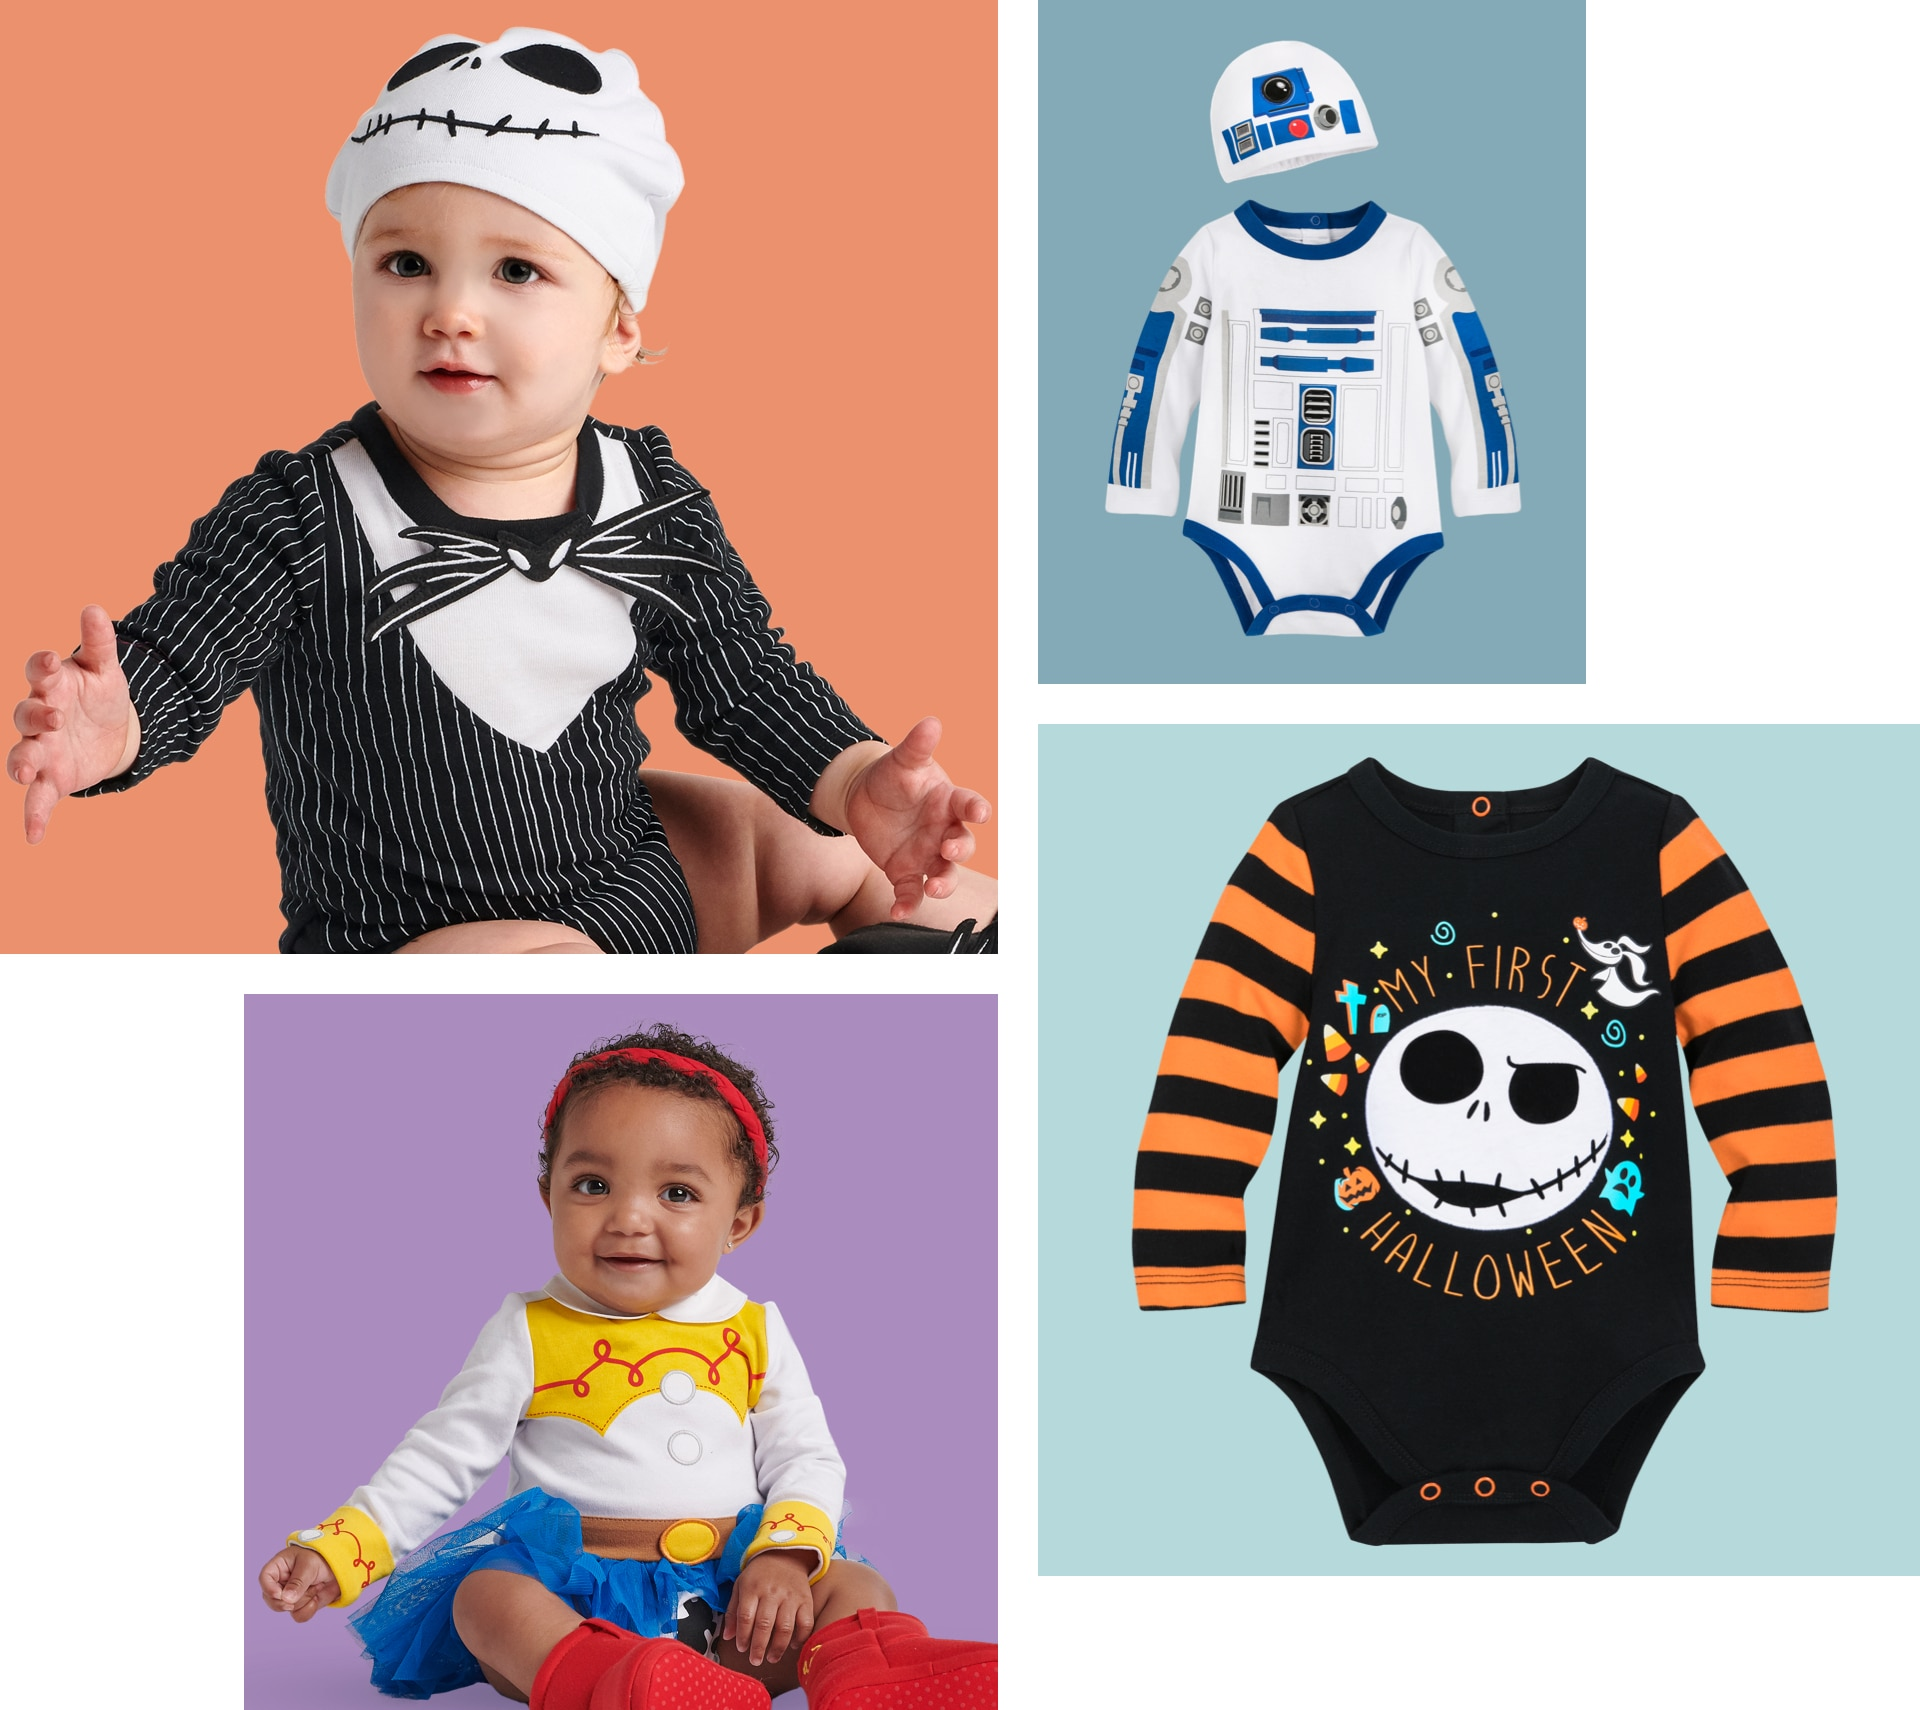 A selection of Halloween products available for kids at shopDisney including a Vampirina dress and Tinkerbell dress